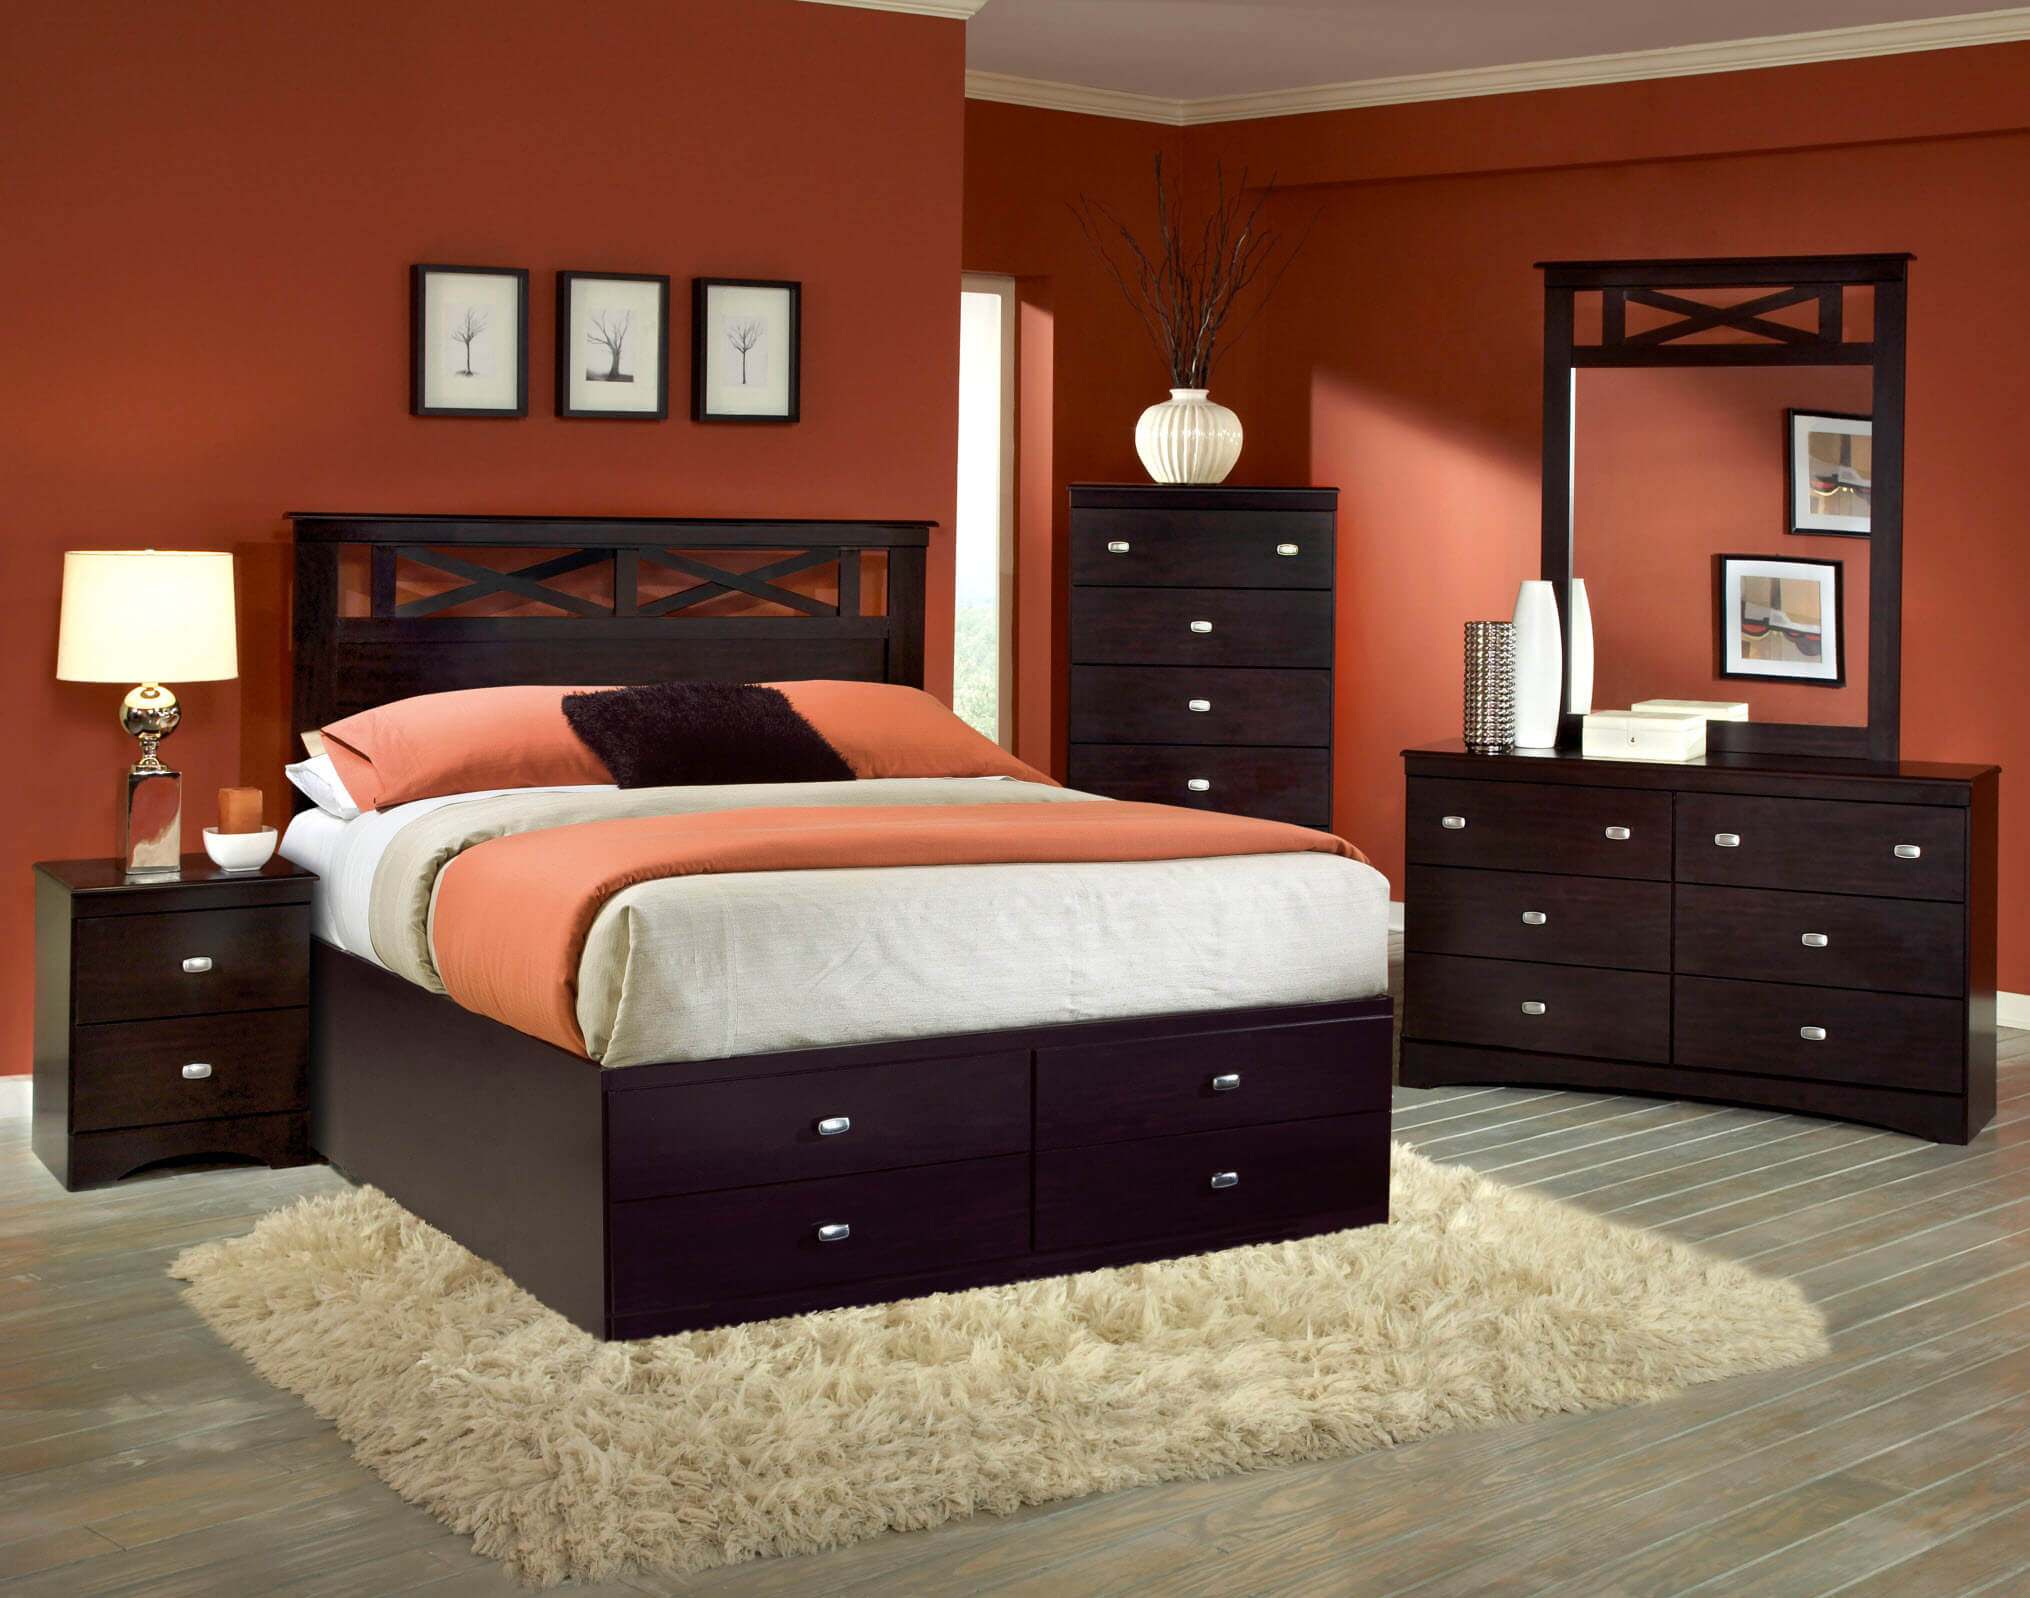 design ashley kira htm furniture signature bedroom room storage bed from by set platform